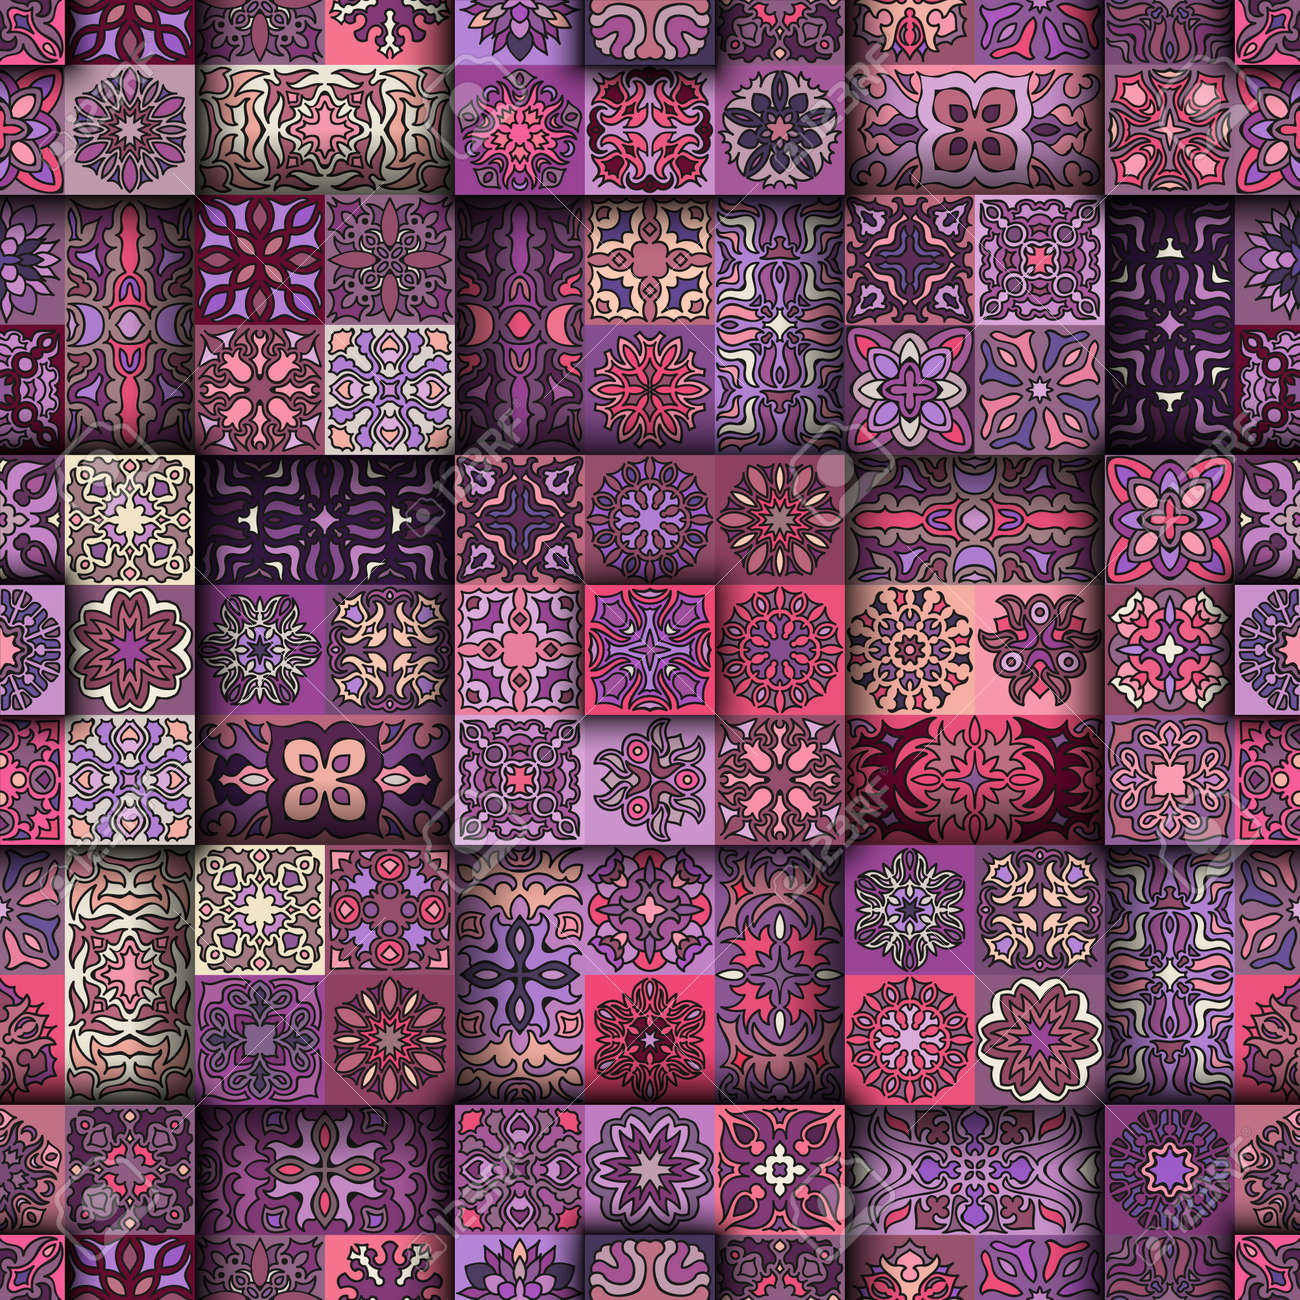 Colorful vintage seamless pattern with floral and mandala elements.Hand drawn background. Can be used for fabric, wallpaper, tile, wrapping, covers and carpet. Islam, Arabic, Indian, ottoman motifs. - 69590316